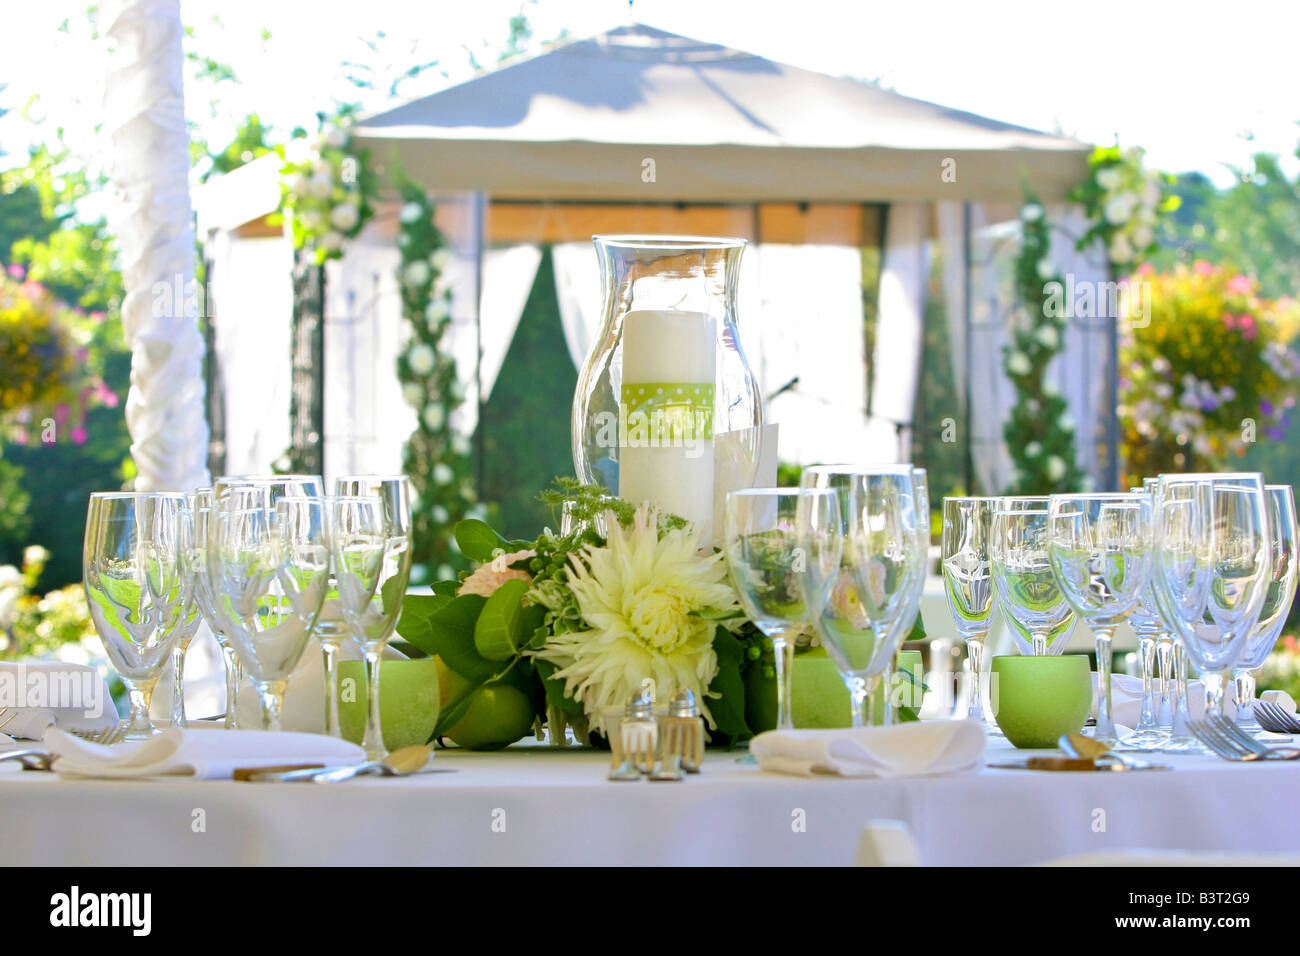 Formal place settings on outdoor table - Stock Image